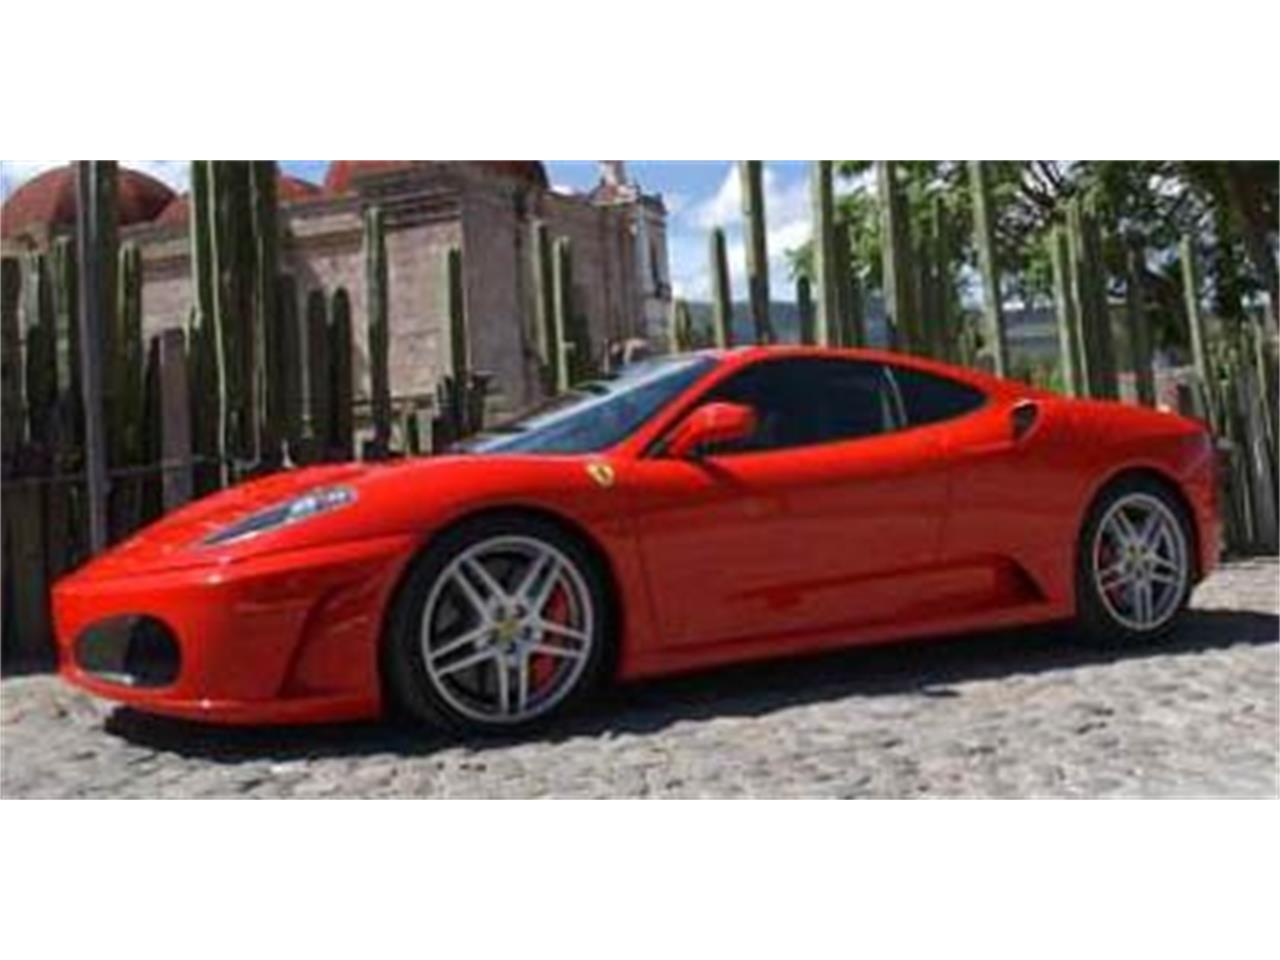 2005 Ferrari F430 for sale in San Carlos, CA – photo 46